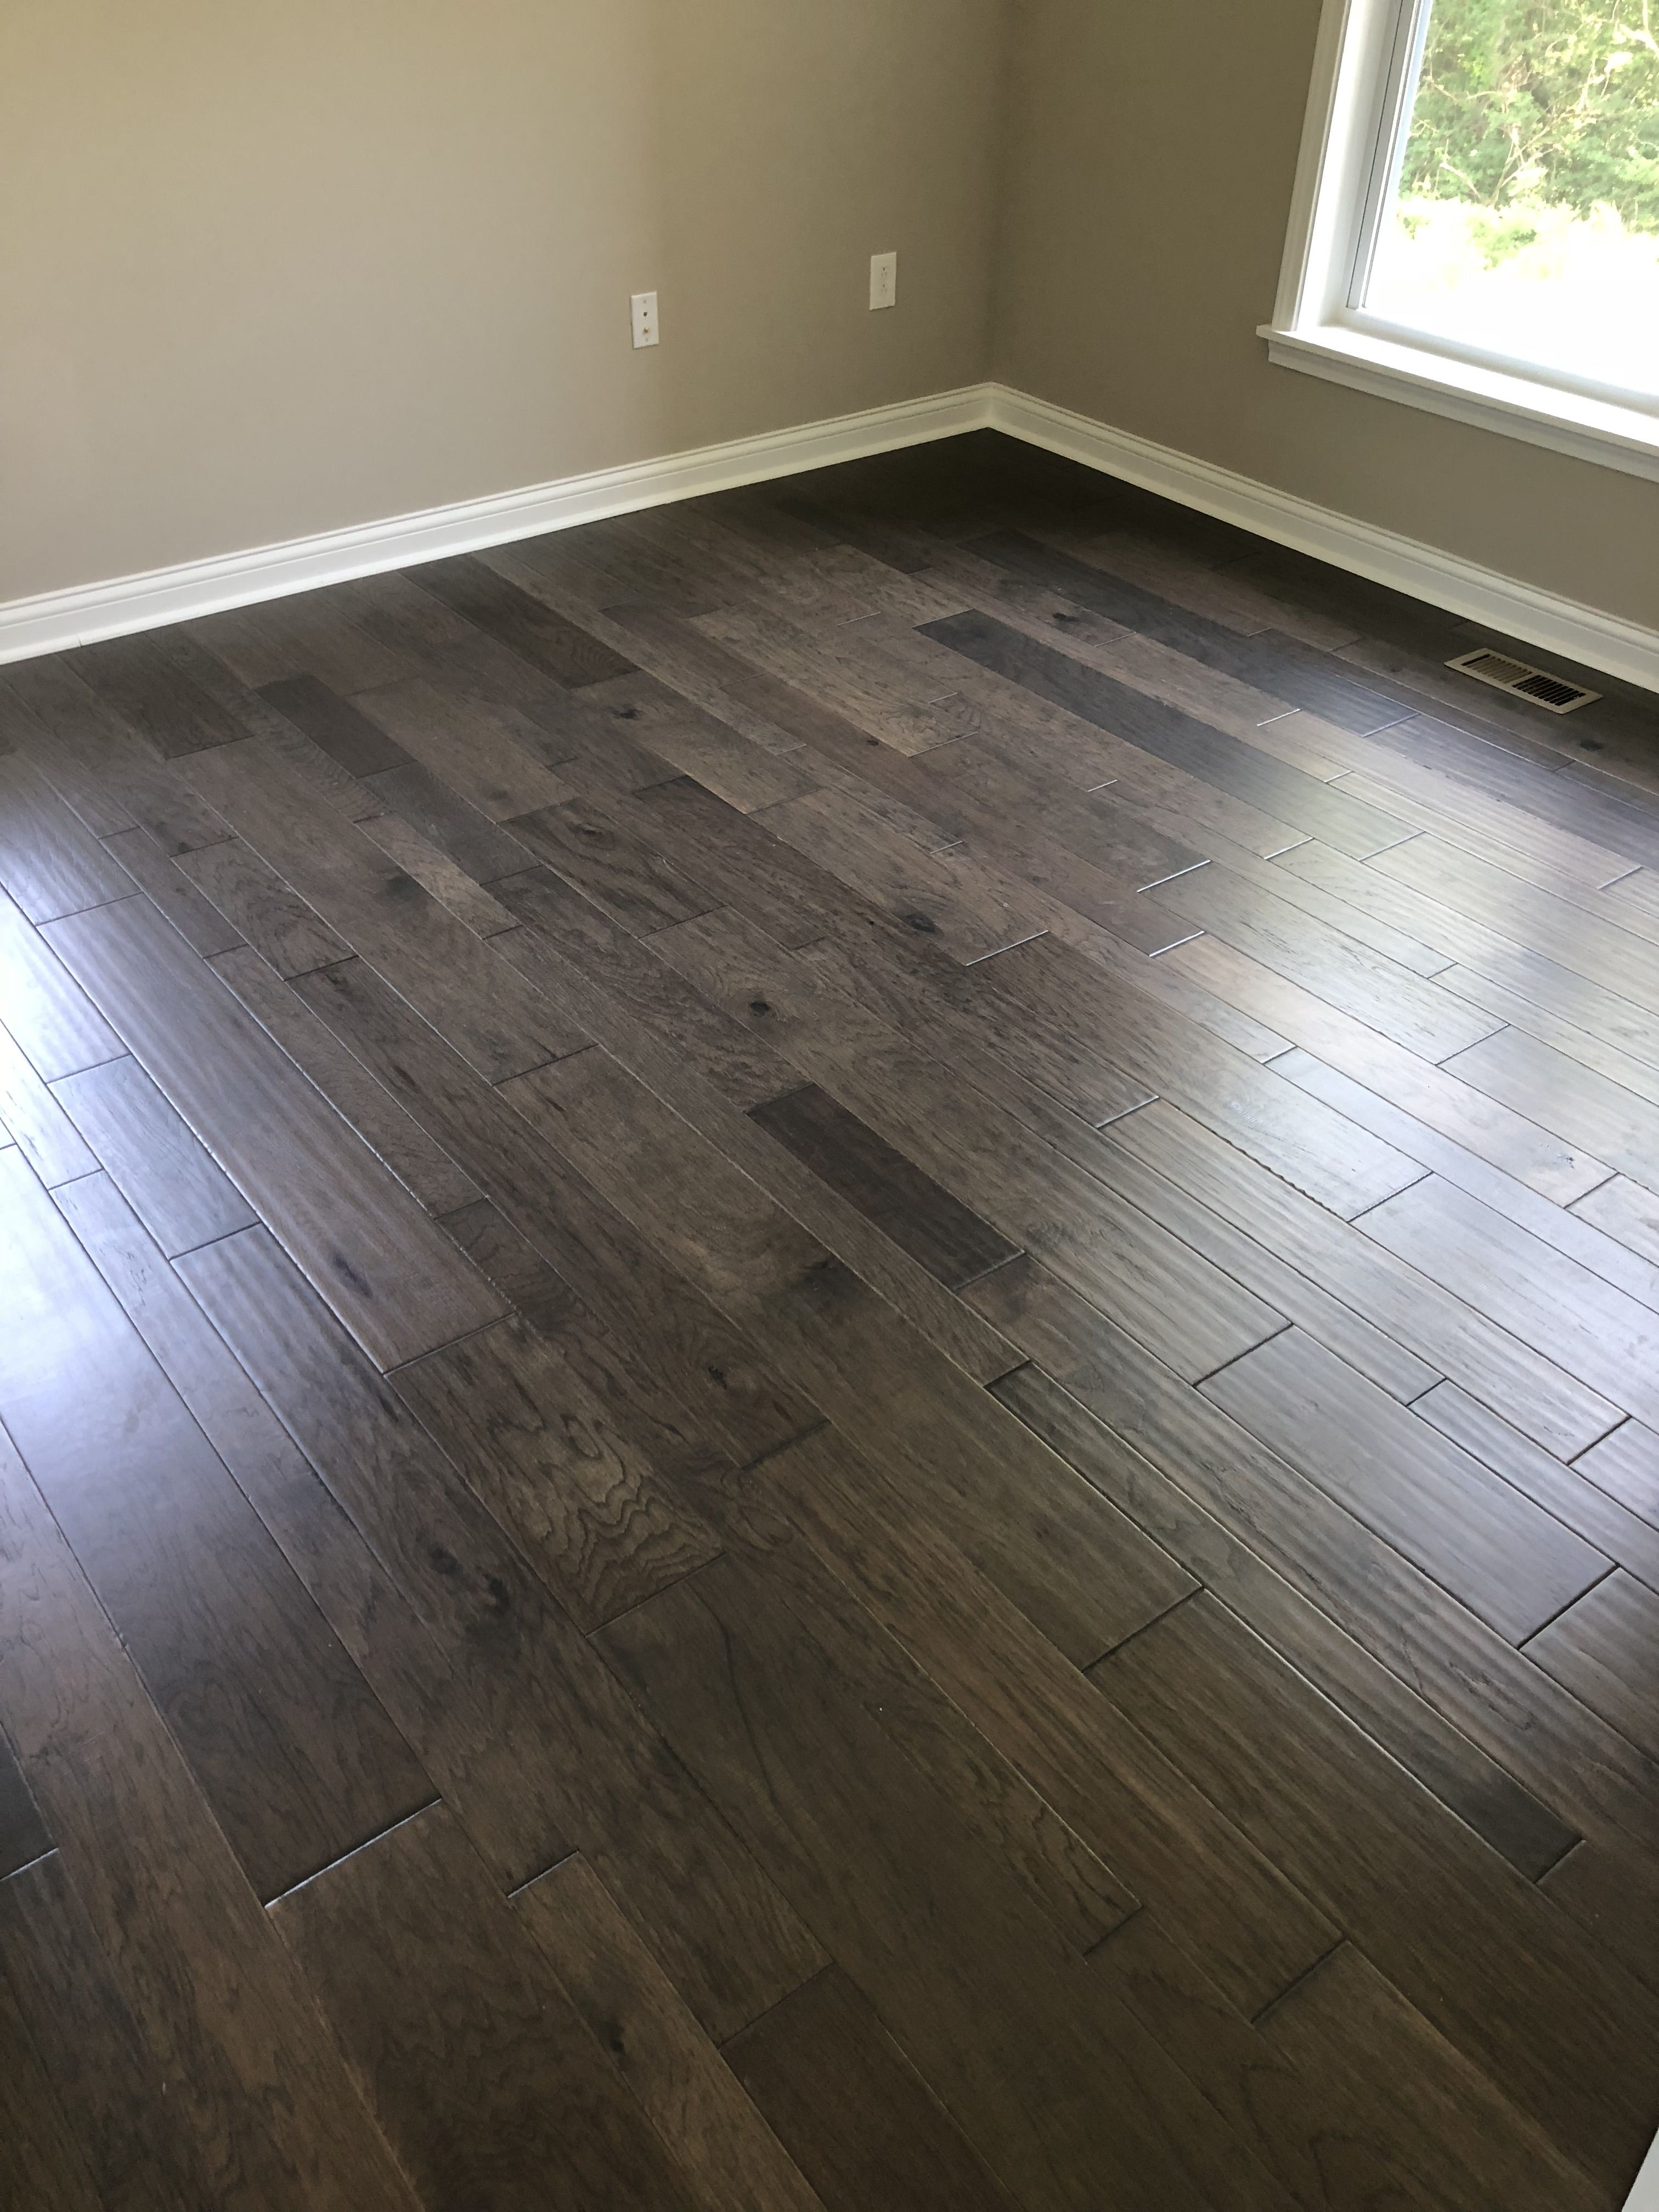 Glenford Hickory, Anchor Hickory, Engineered Hardwood Floors (Multi Plank )